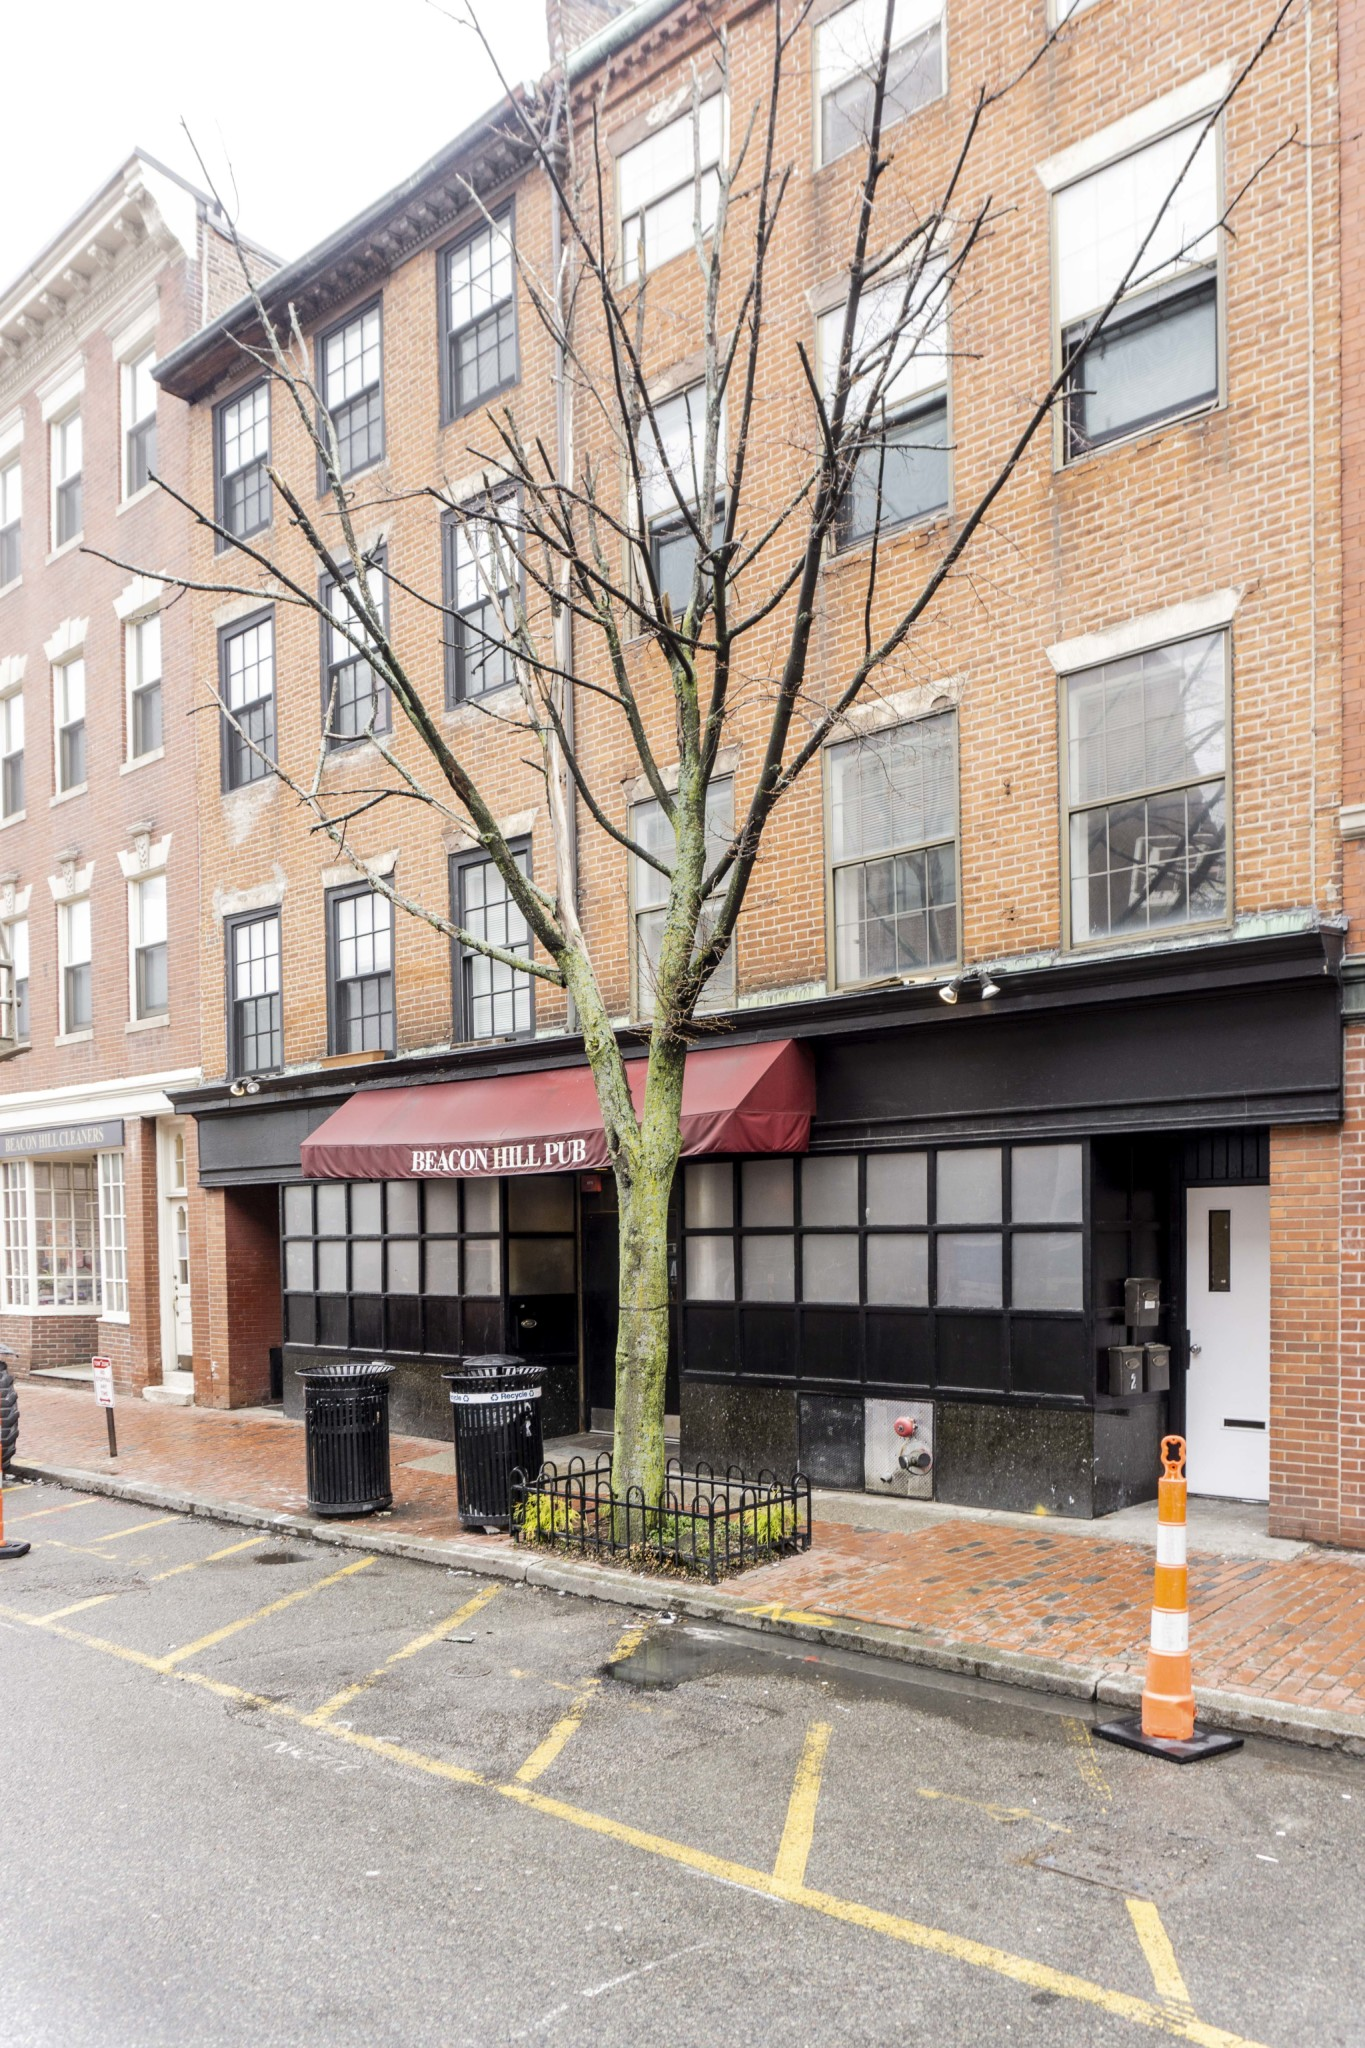 1 Bed, 1 Bath apartment in Boston, Beacon Hill for $2,125